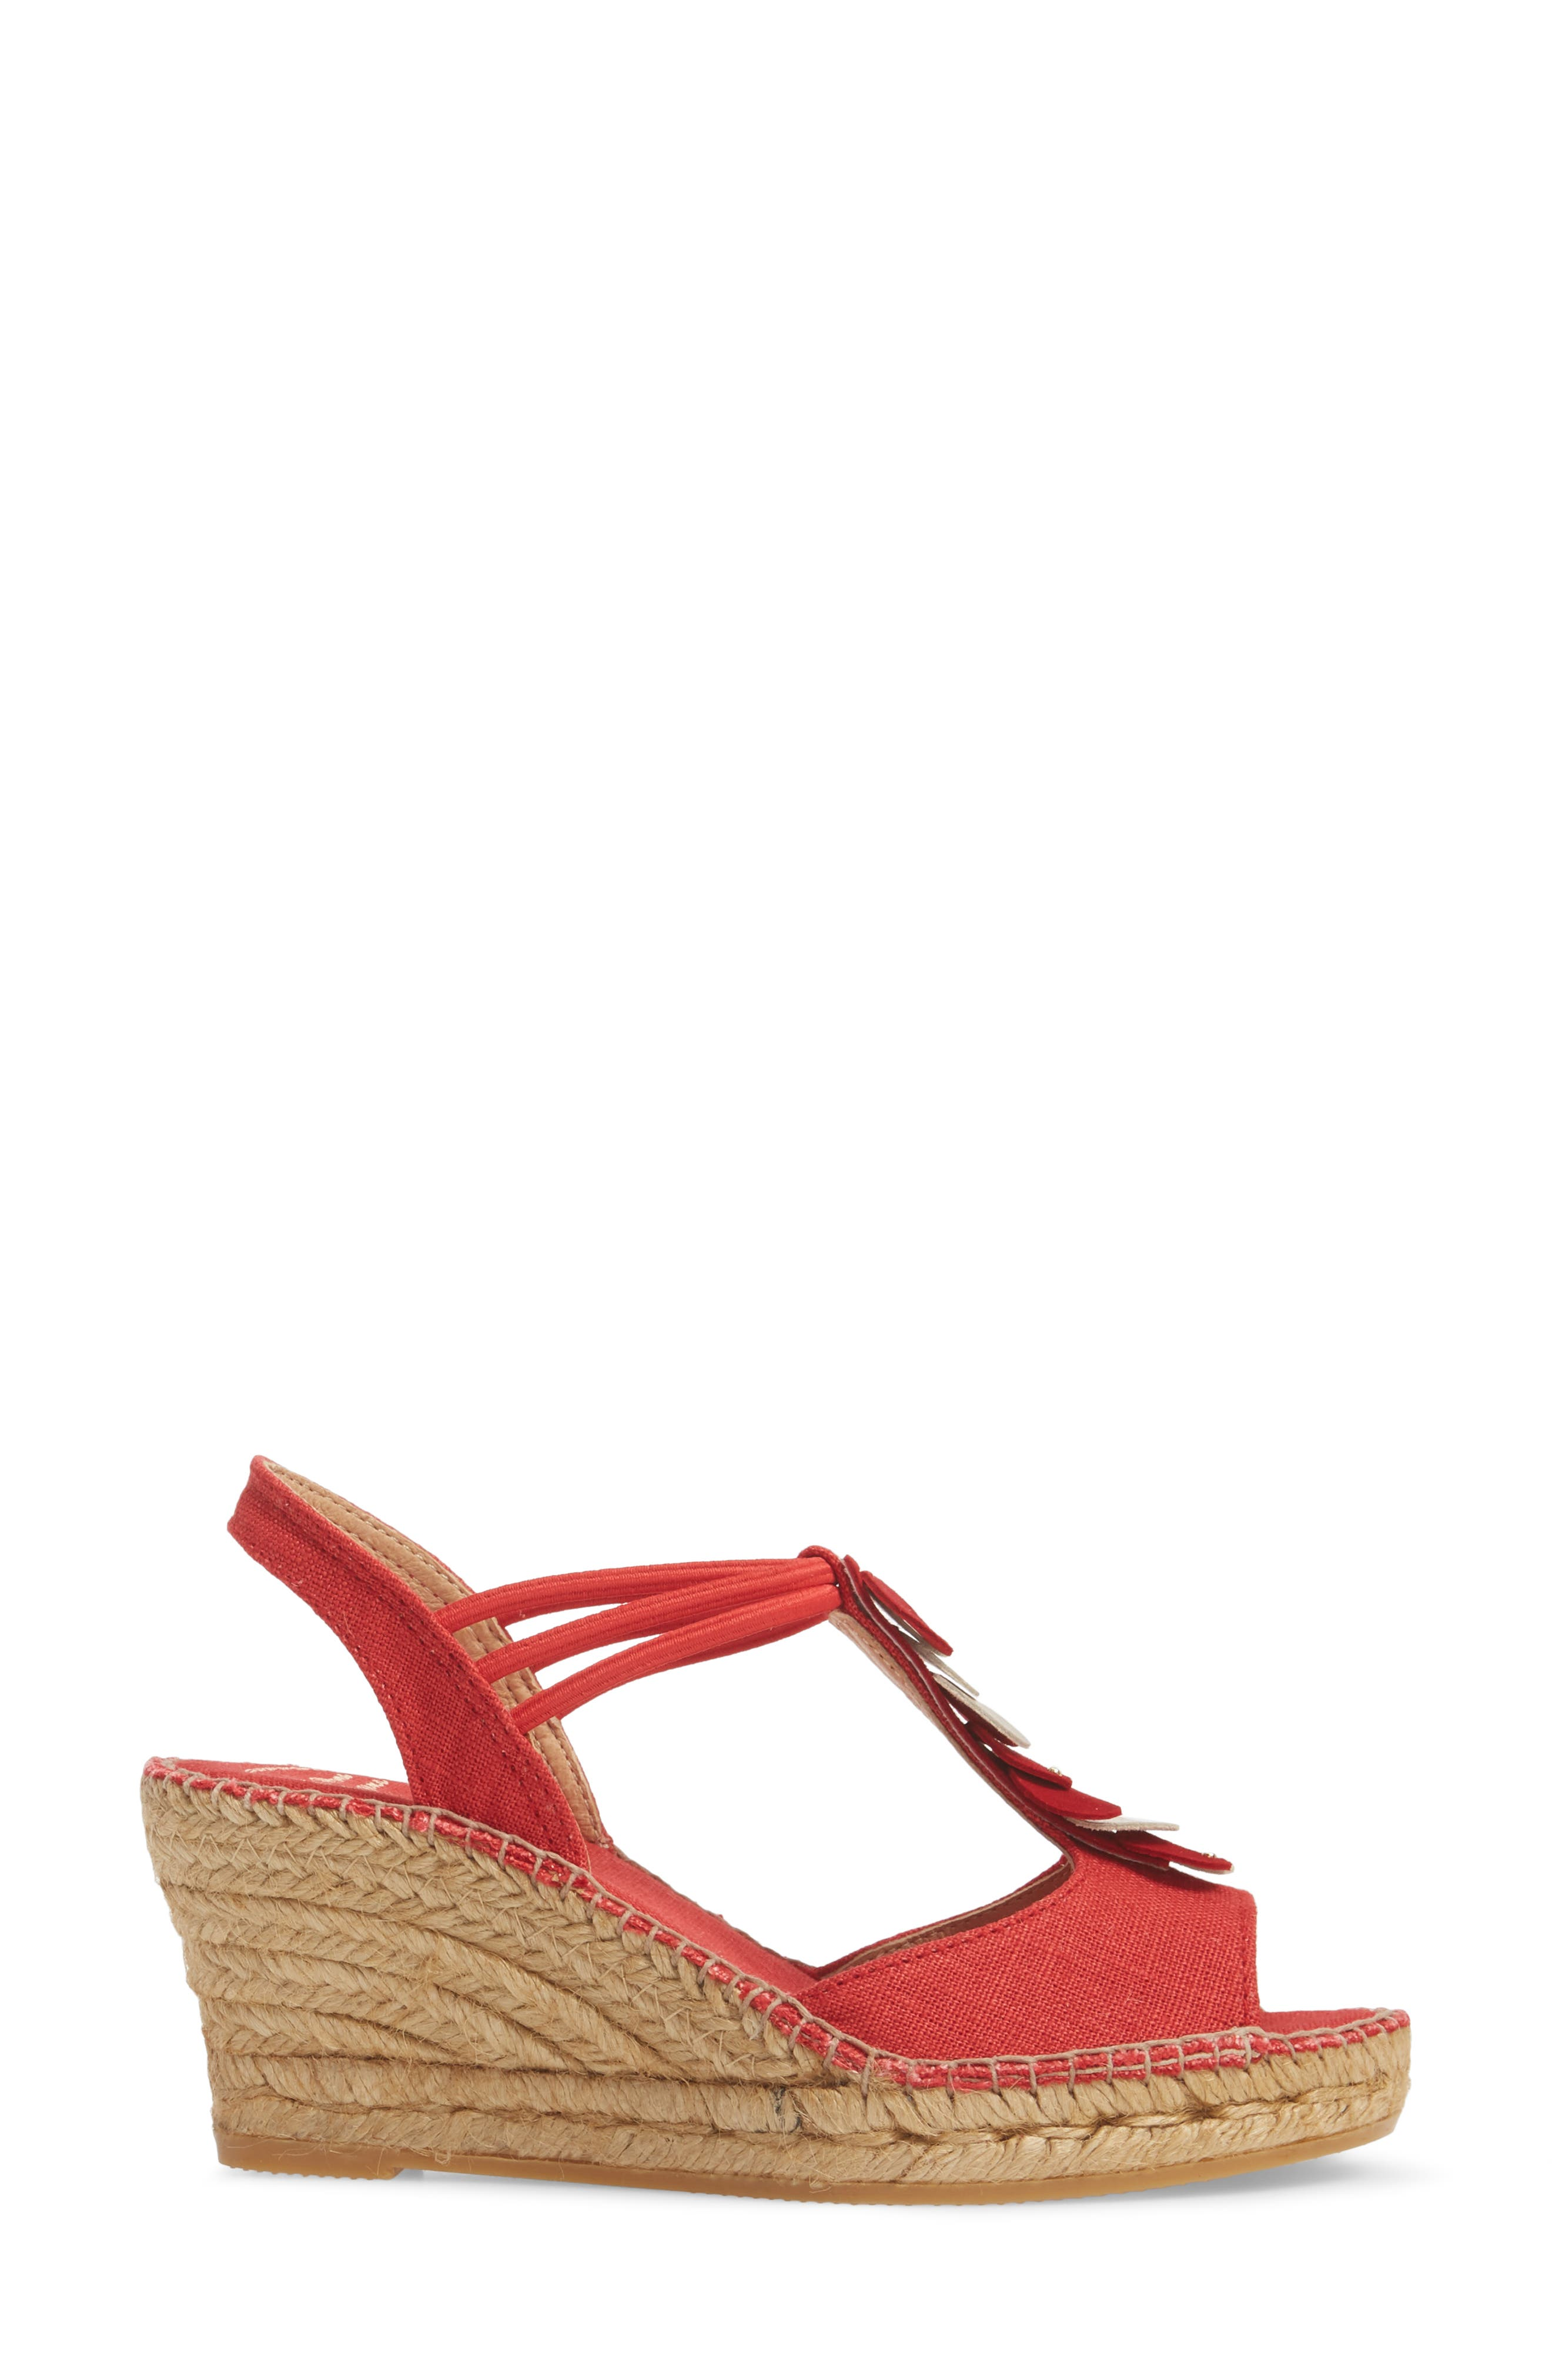 Sitges Espadrille Sandal,                             Alternate thumbnail 3, color,                             Red Fabric